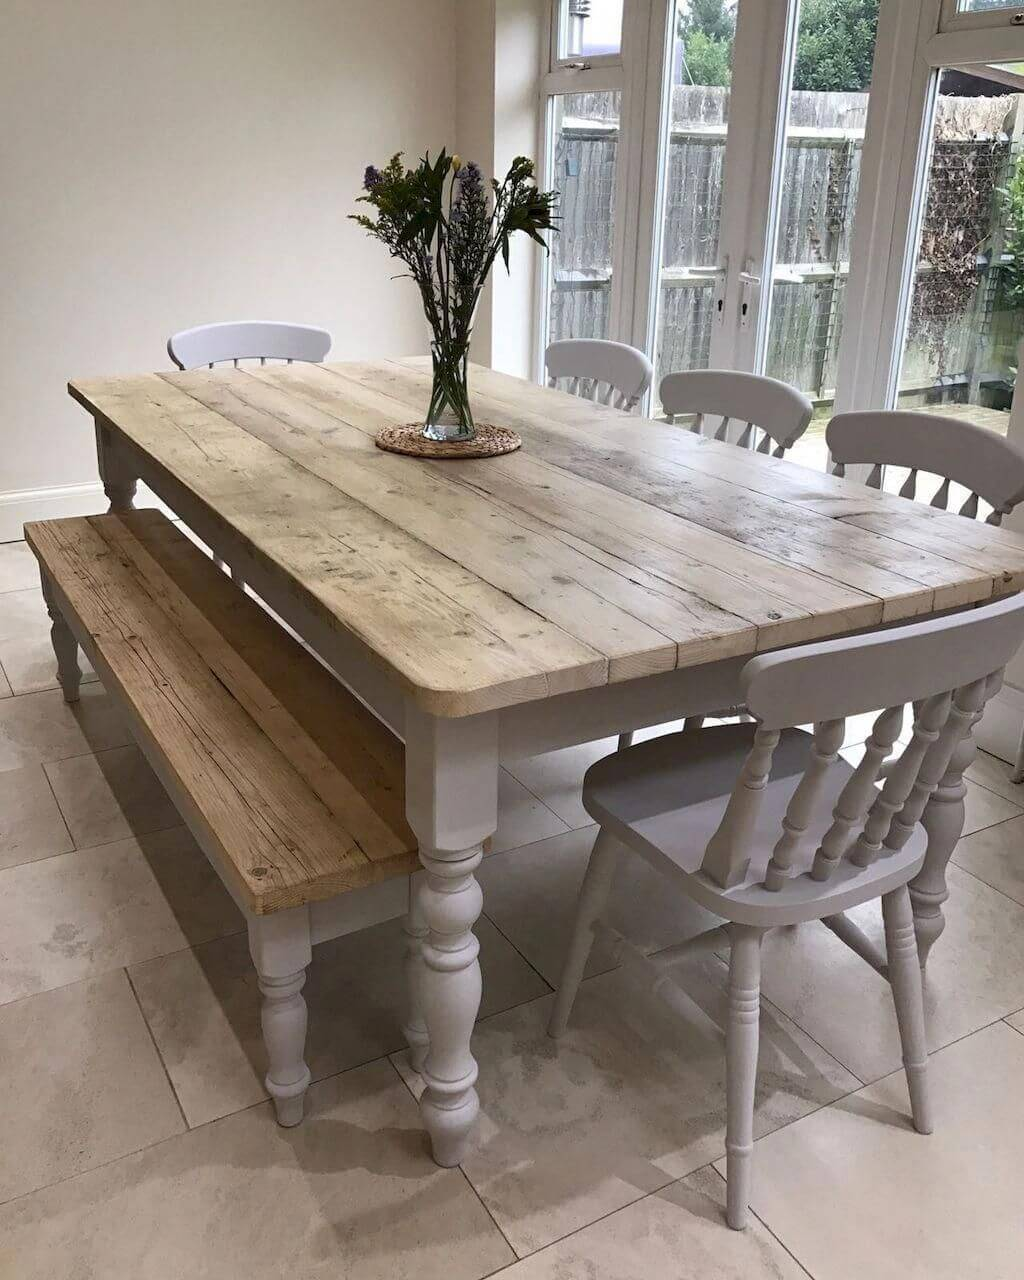 Conservatory Table Ideas - Dining Tables & Chairs